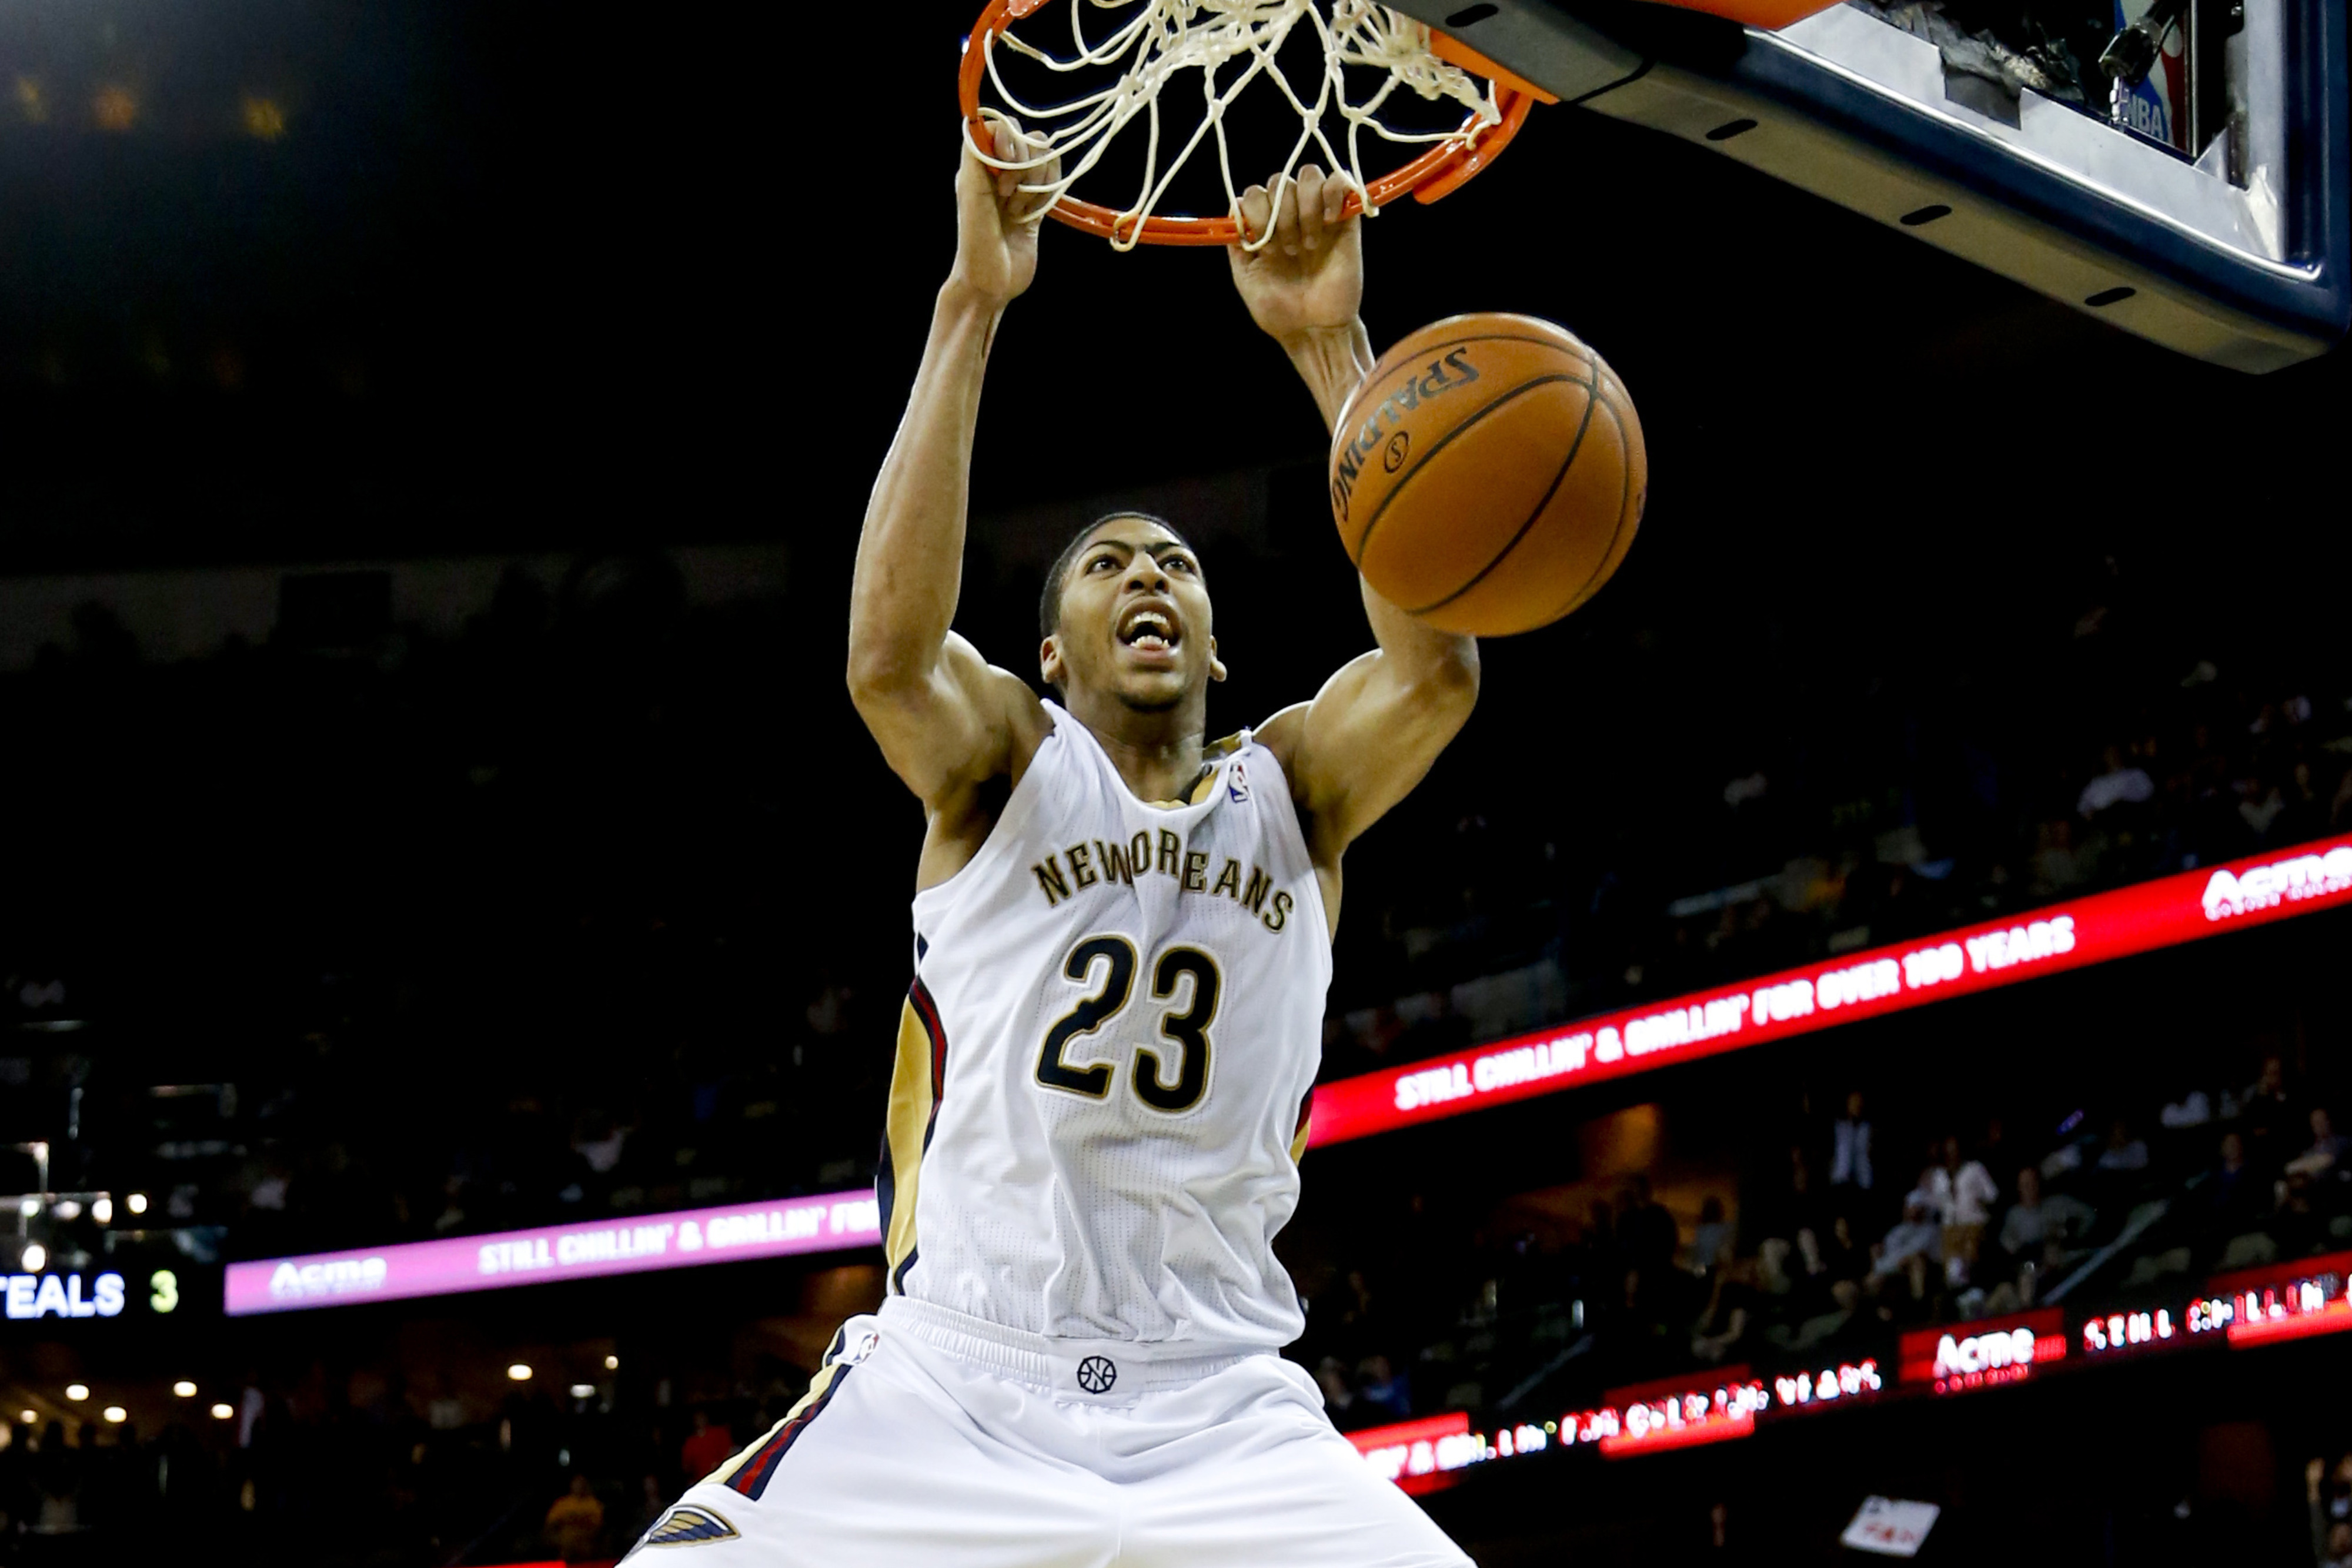 Anthony Davis puts exclamation point on outstanding game with big dunk